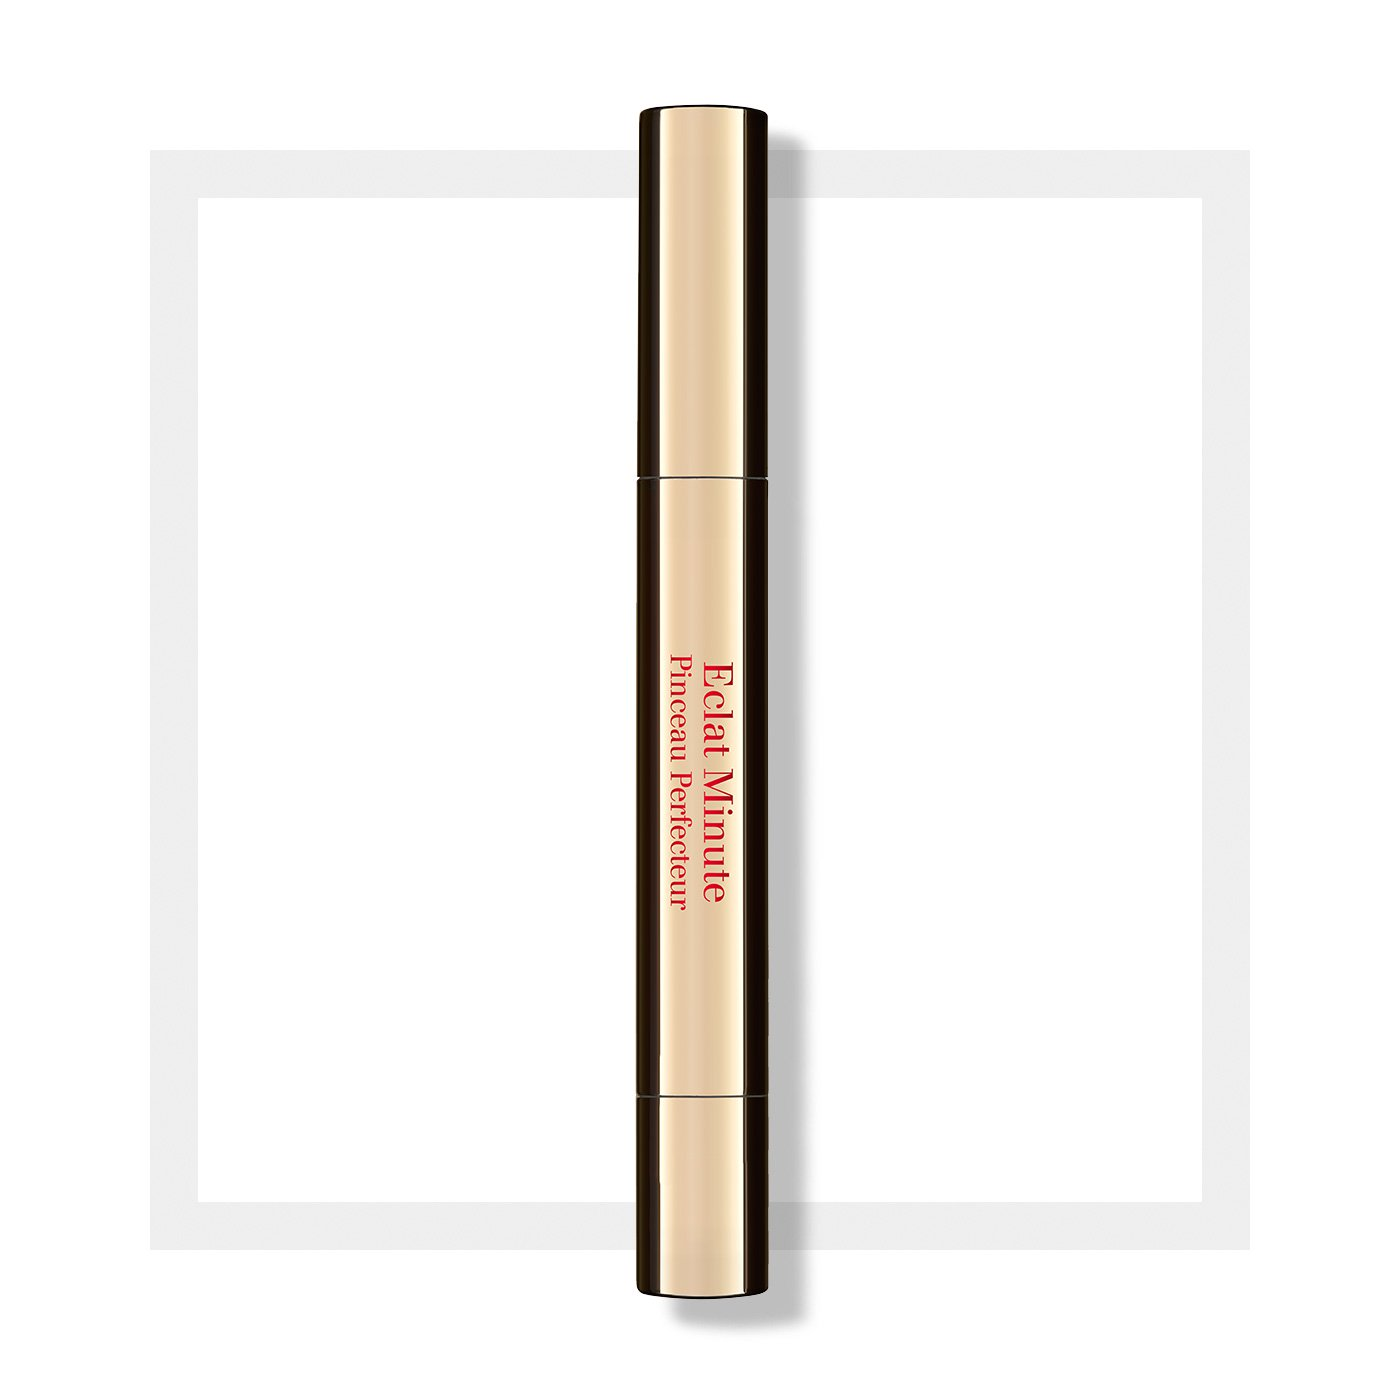 ECLAT MINUTE Instant Light Brush-On Perfector 2ml